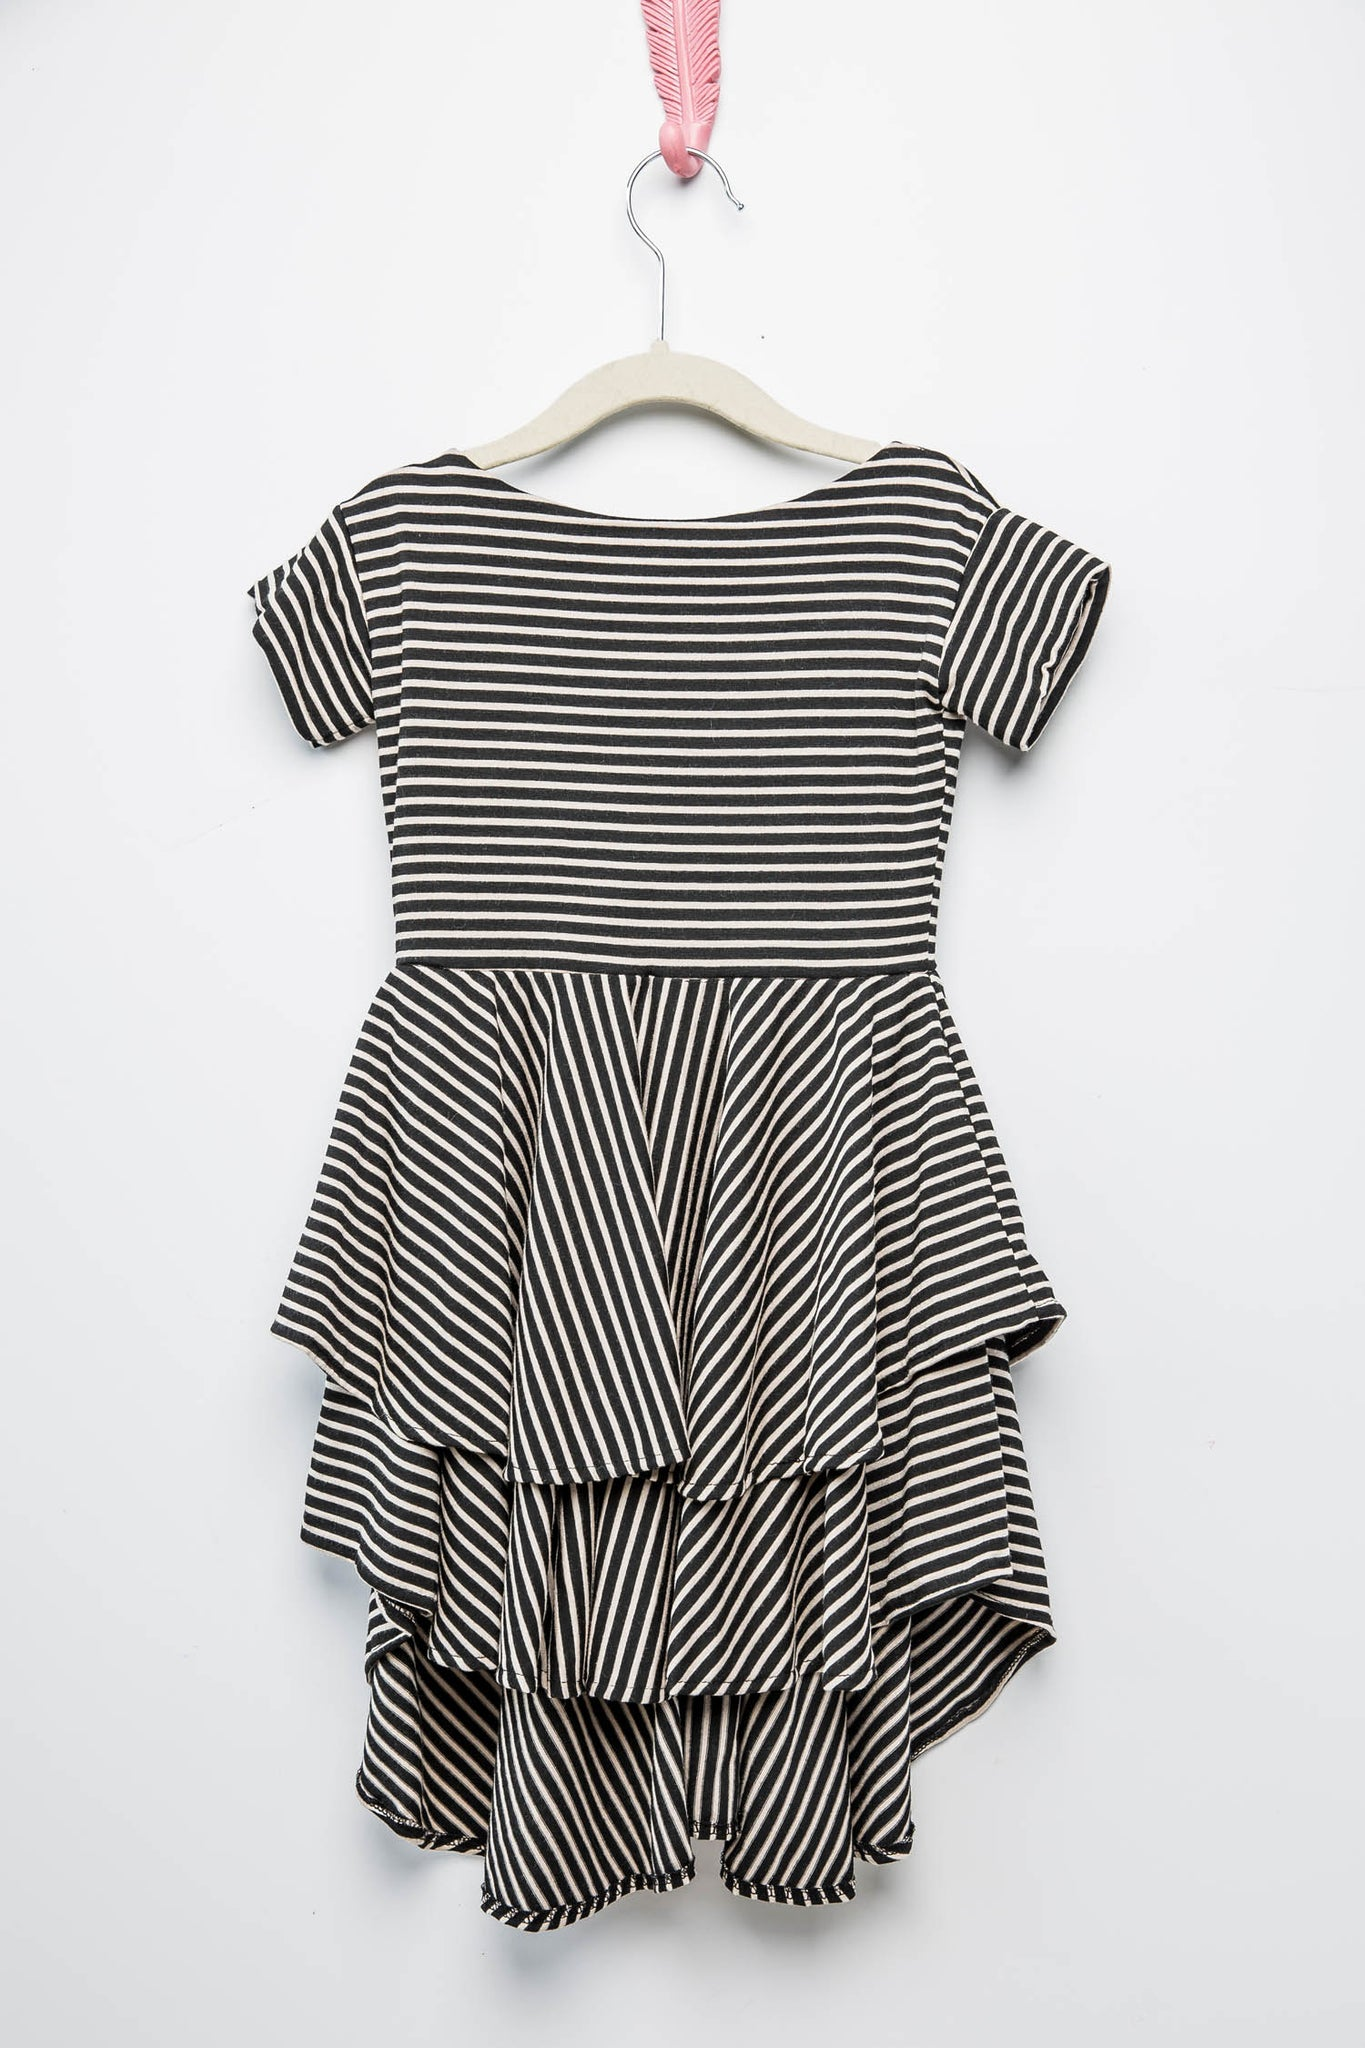 little-girls-stripe-ruffle-play-dress-cute-kucoon-designs-made-usa